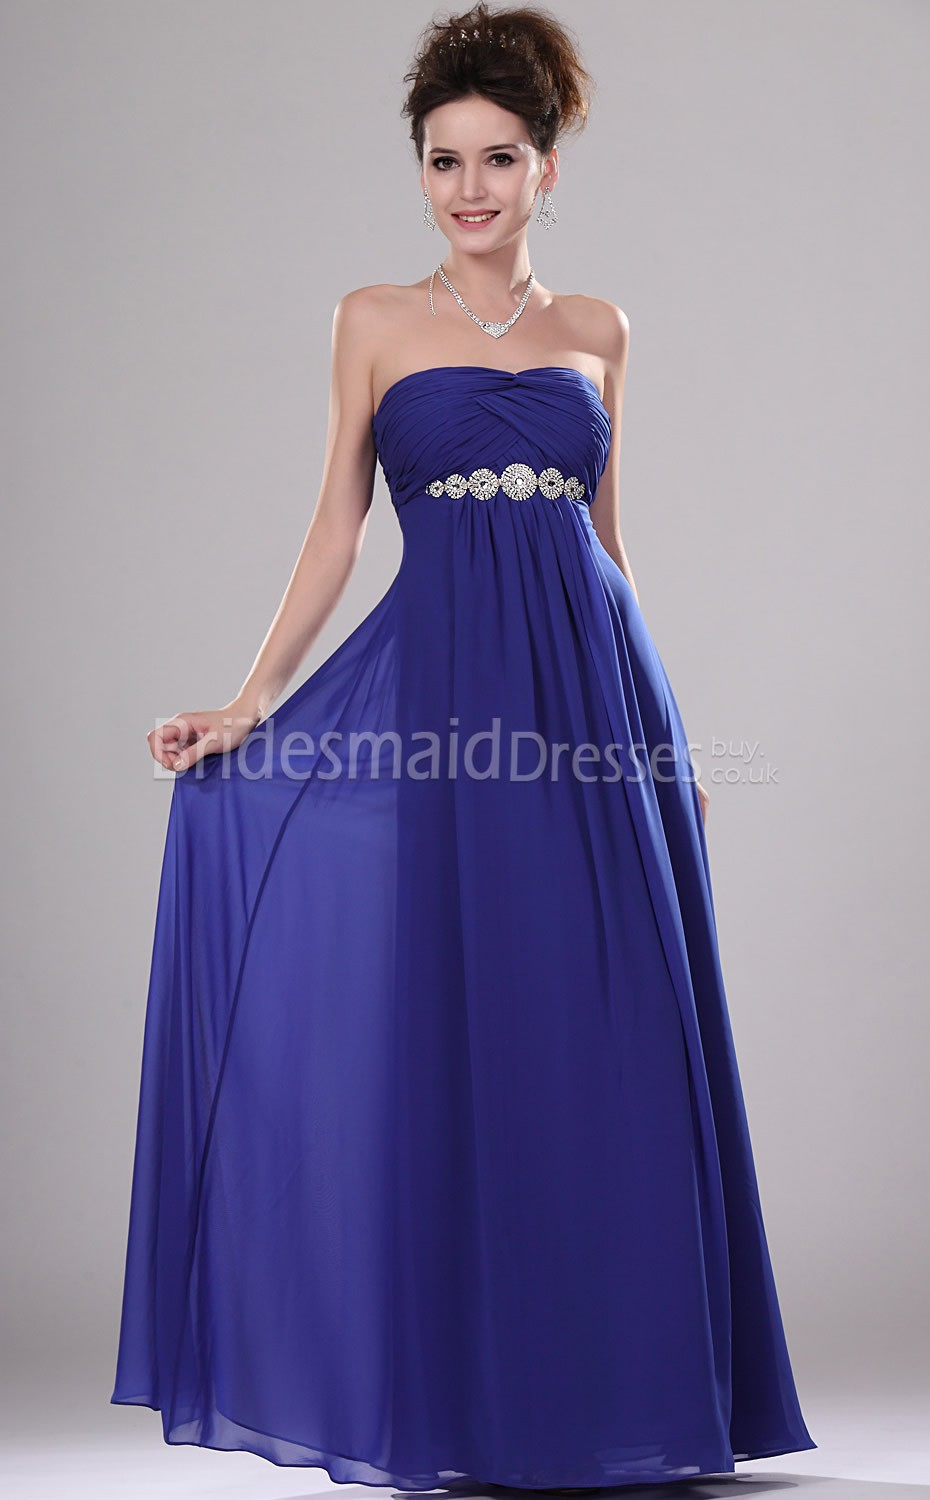 Bridesmaid Dresses In Blue